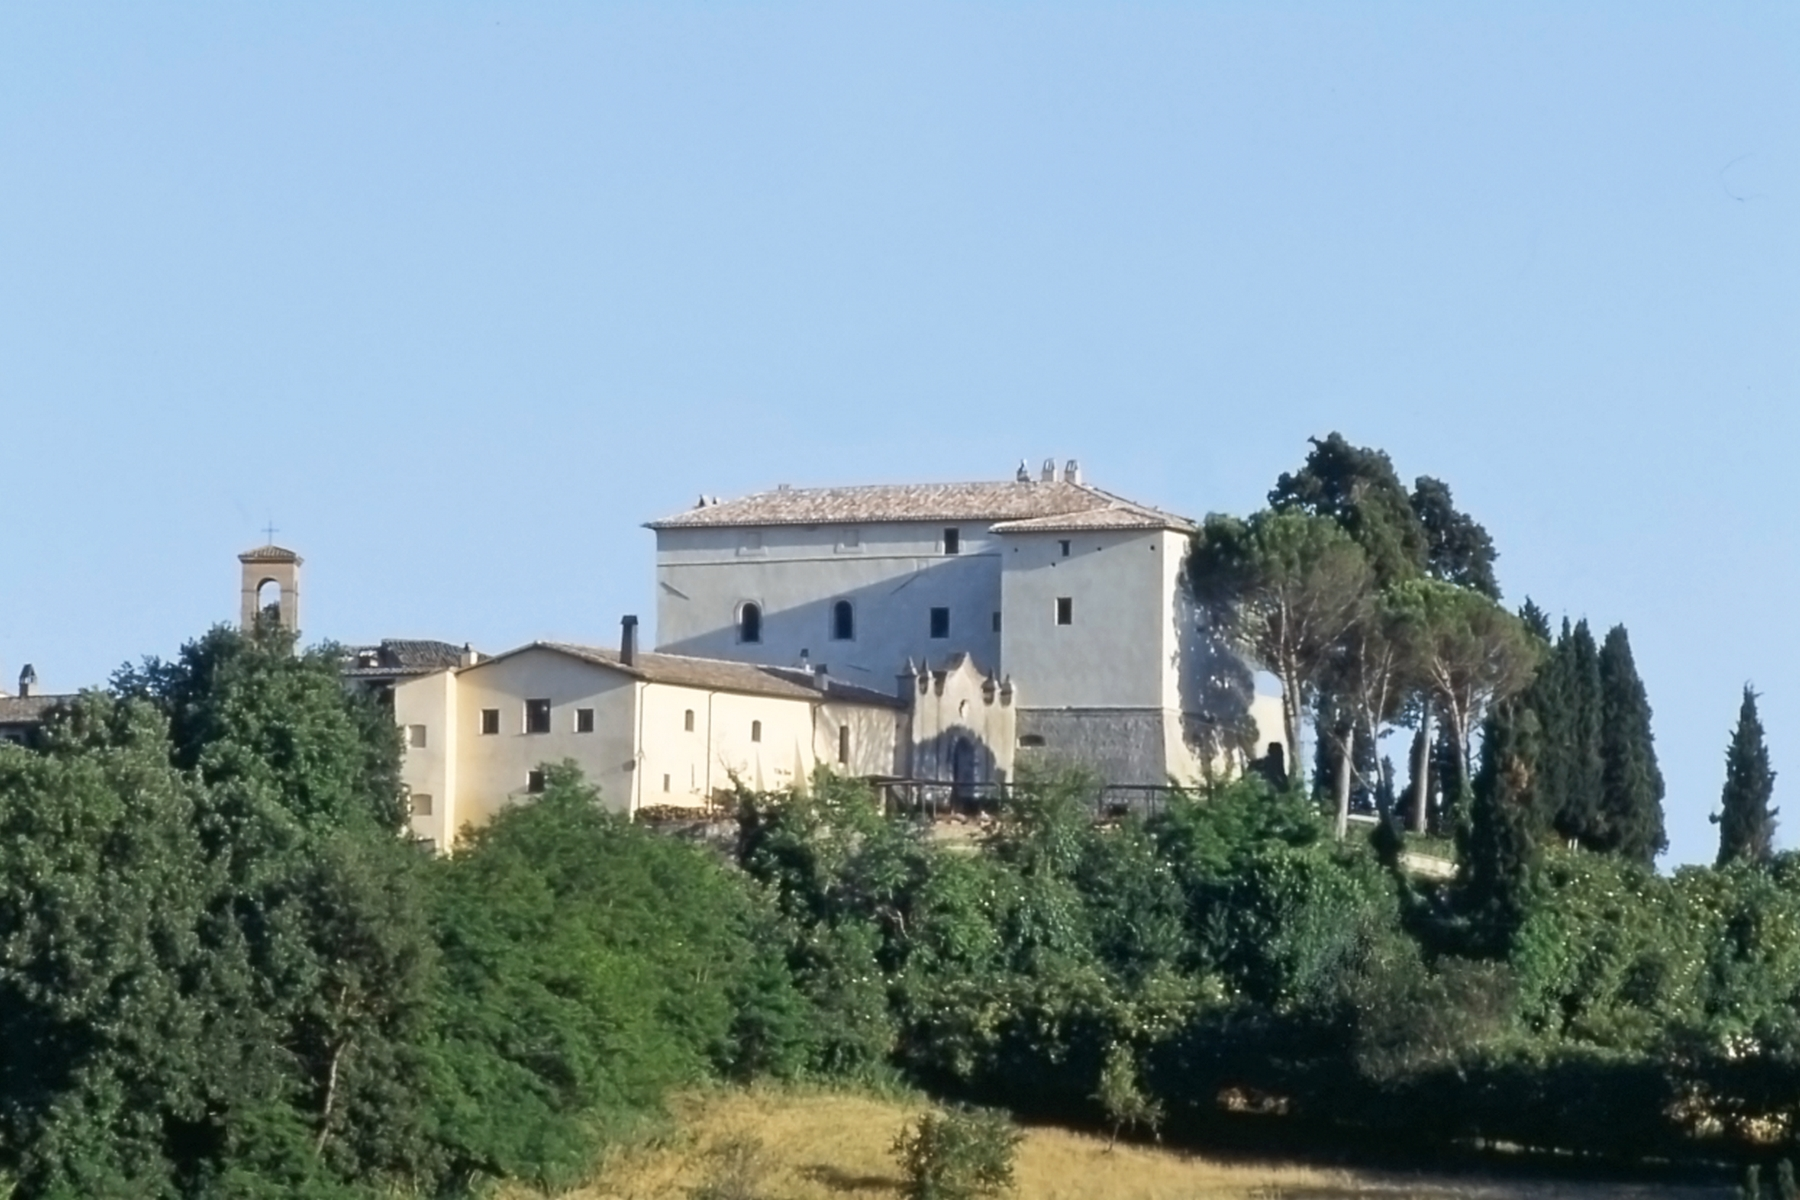 Property For Sale at Glamorous Castle with hamlet, country houses and 290ha of land